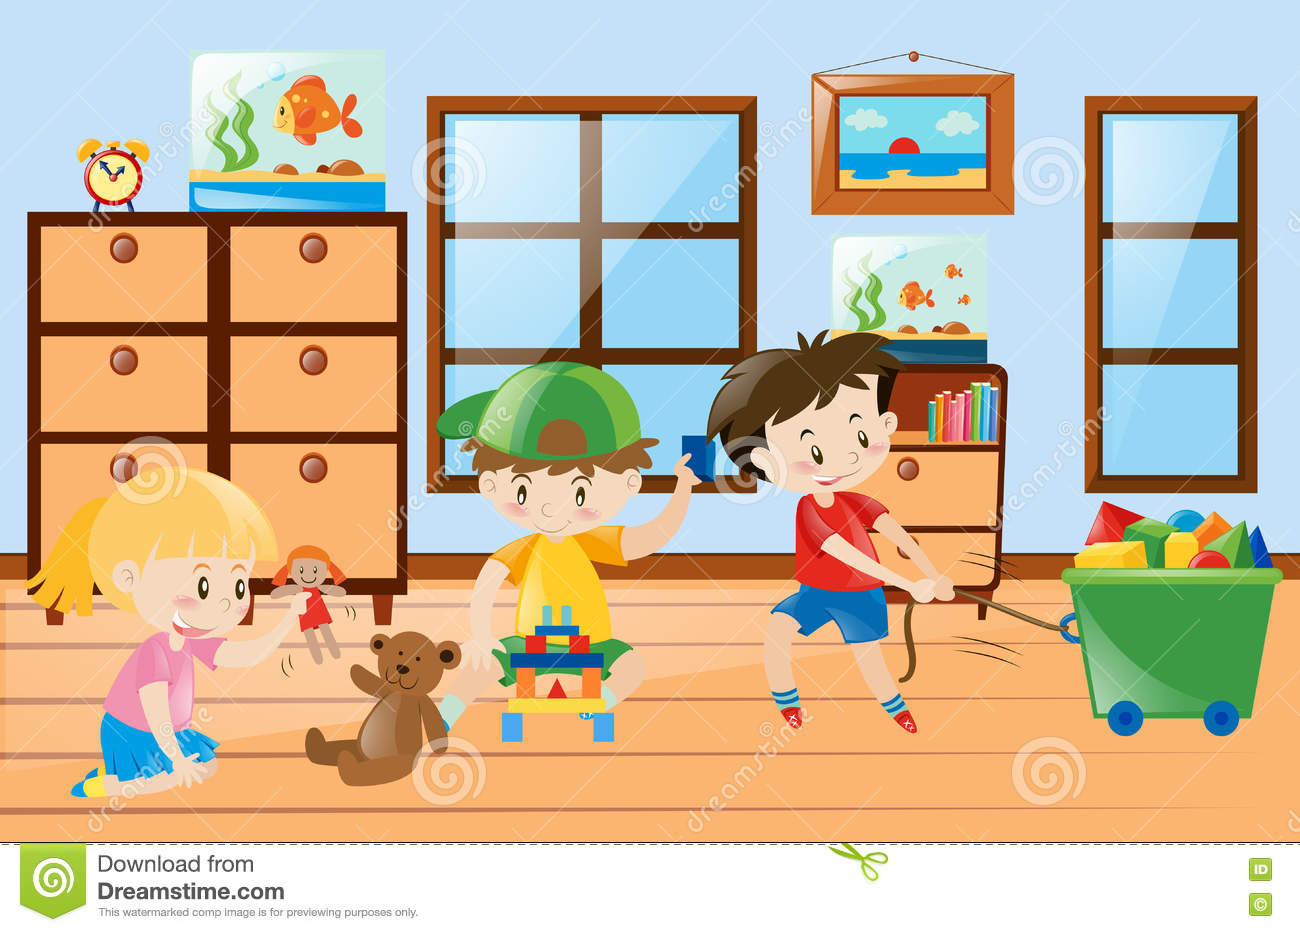 1 Bedroom House Floor Plans Children Playing Toys Inside The Room Stock Vector